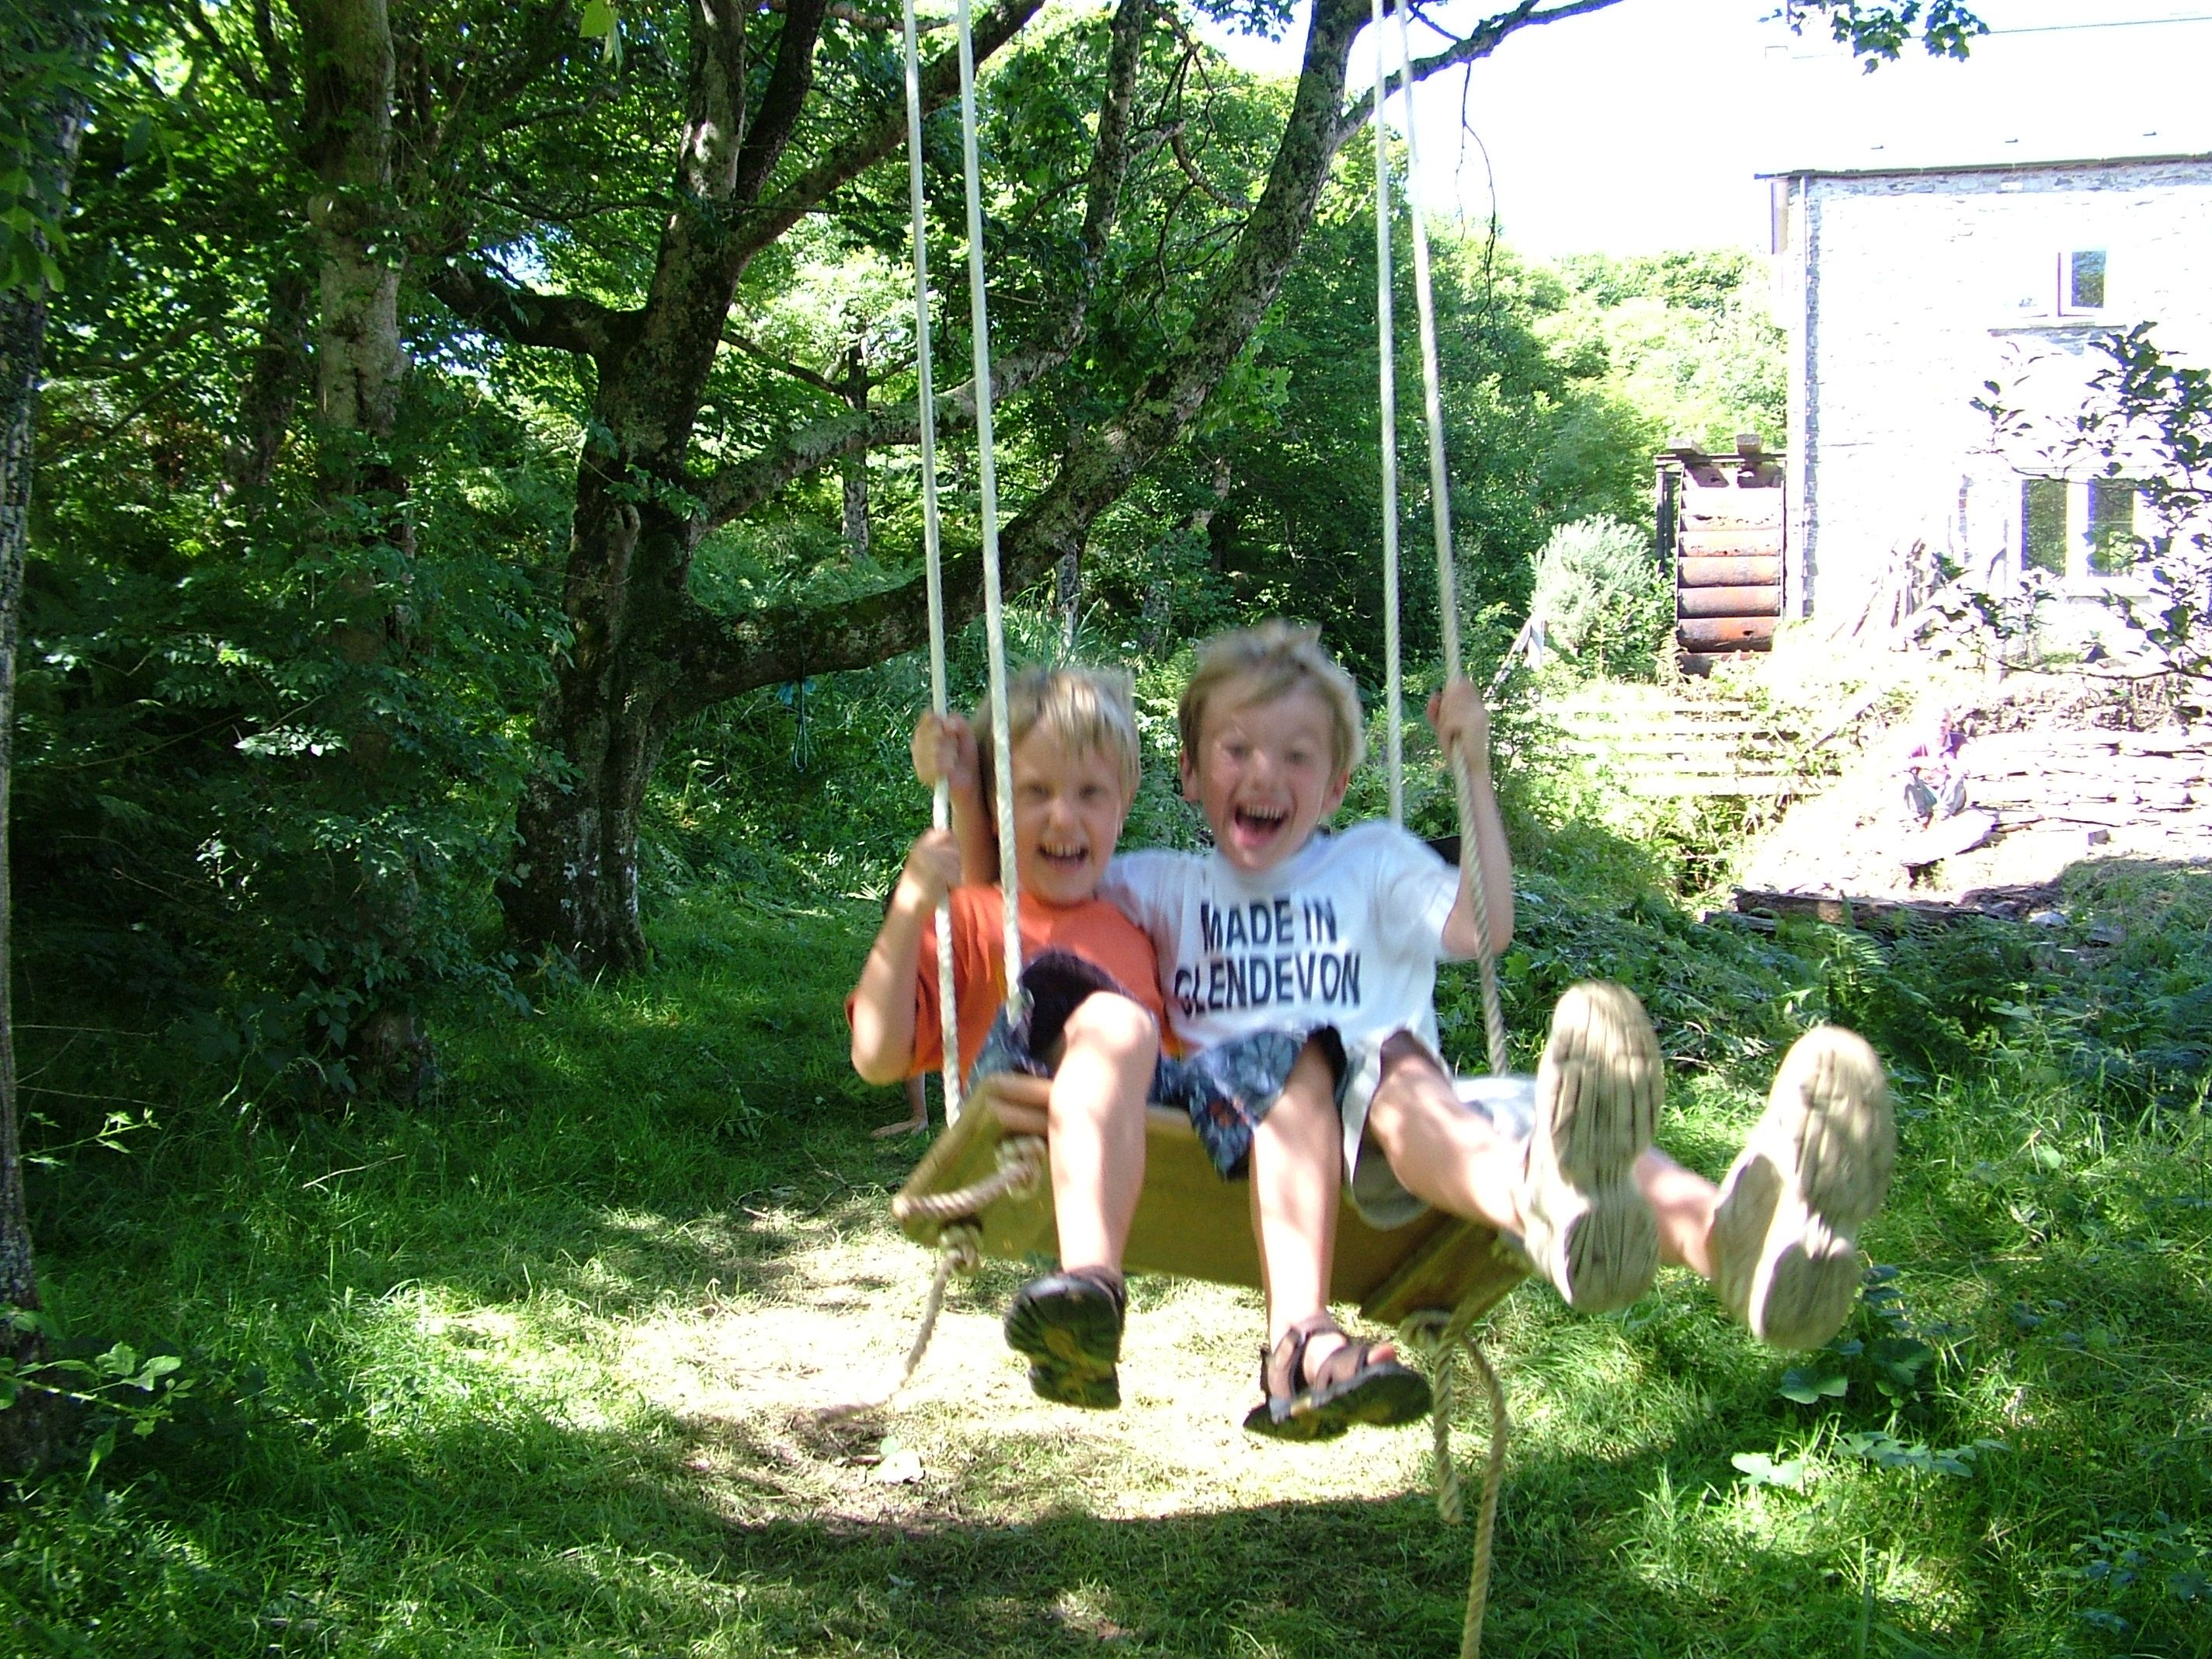 Crazy capers on the swing in the garden of the old mill on the isle